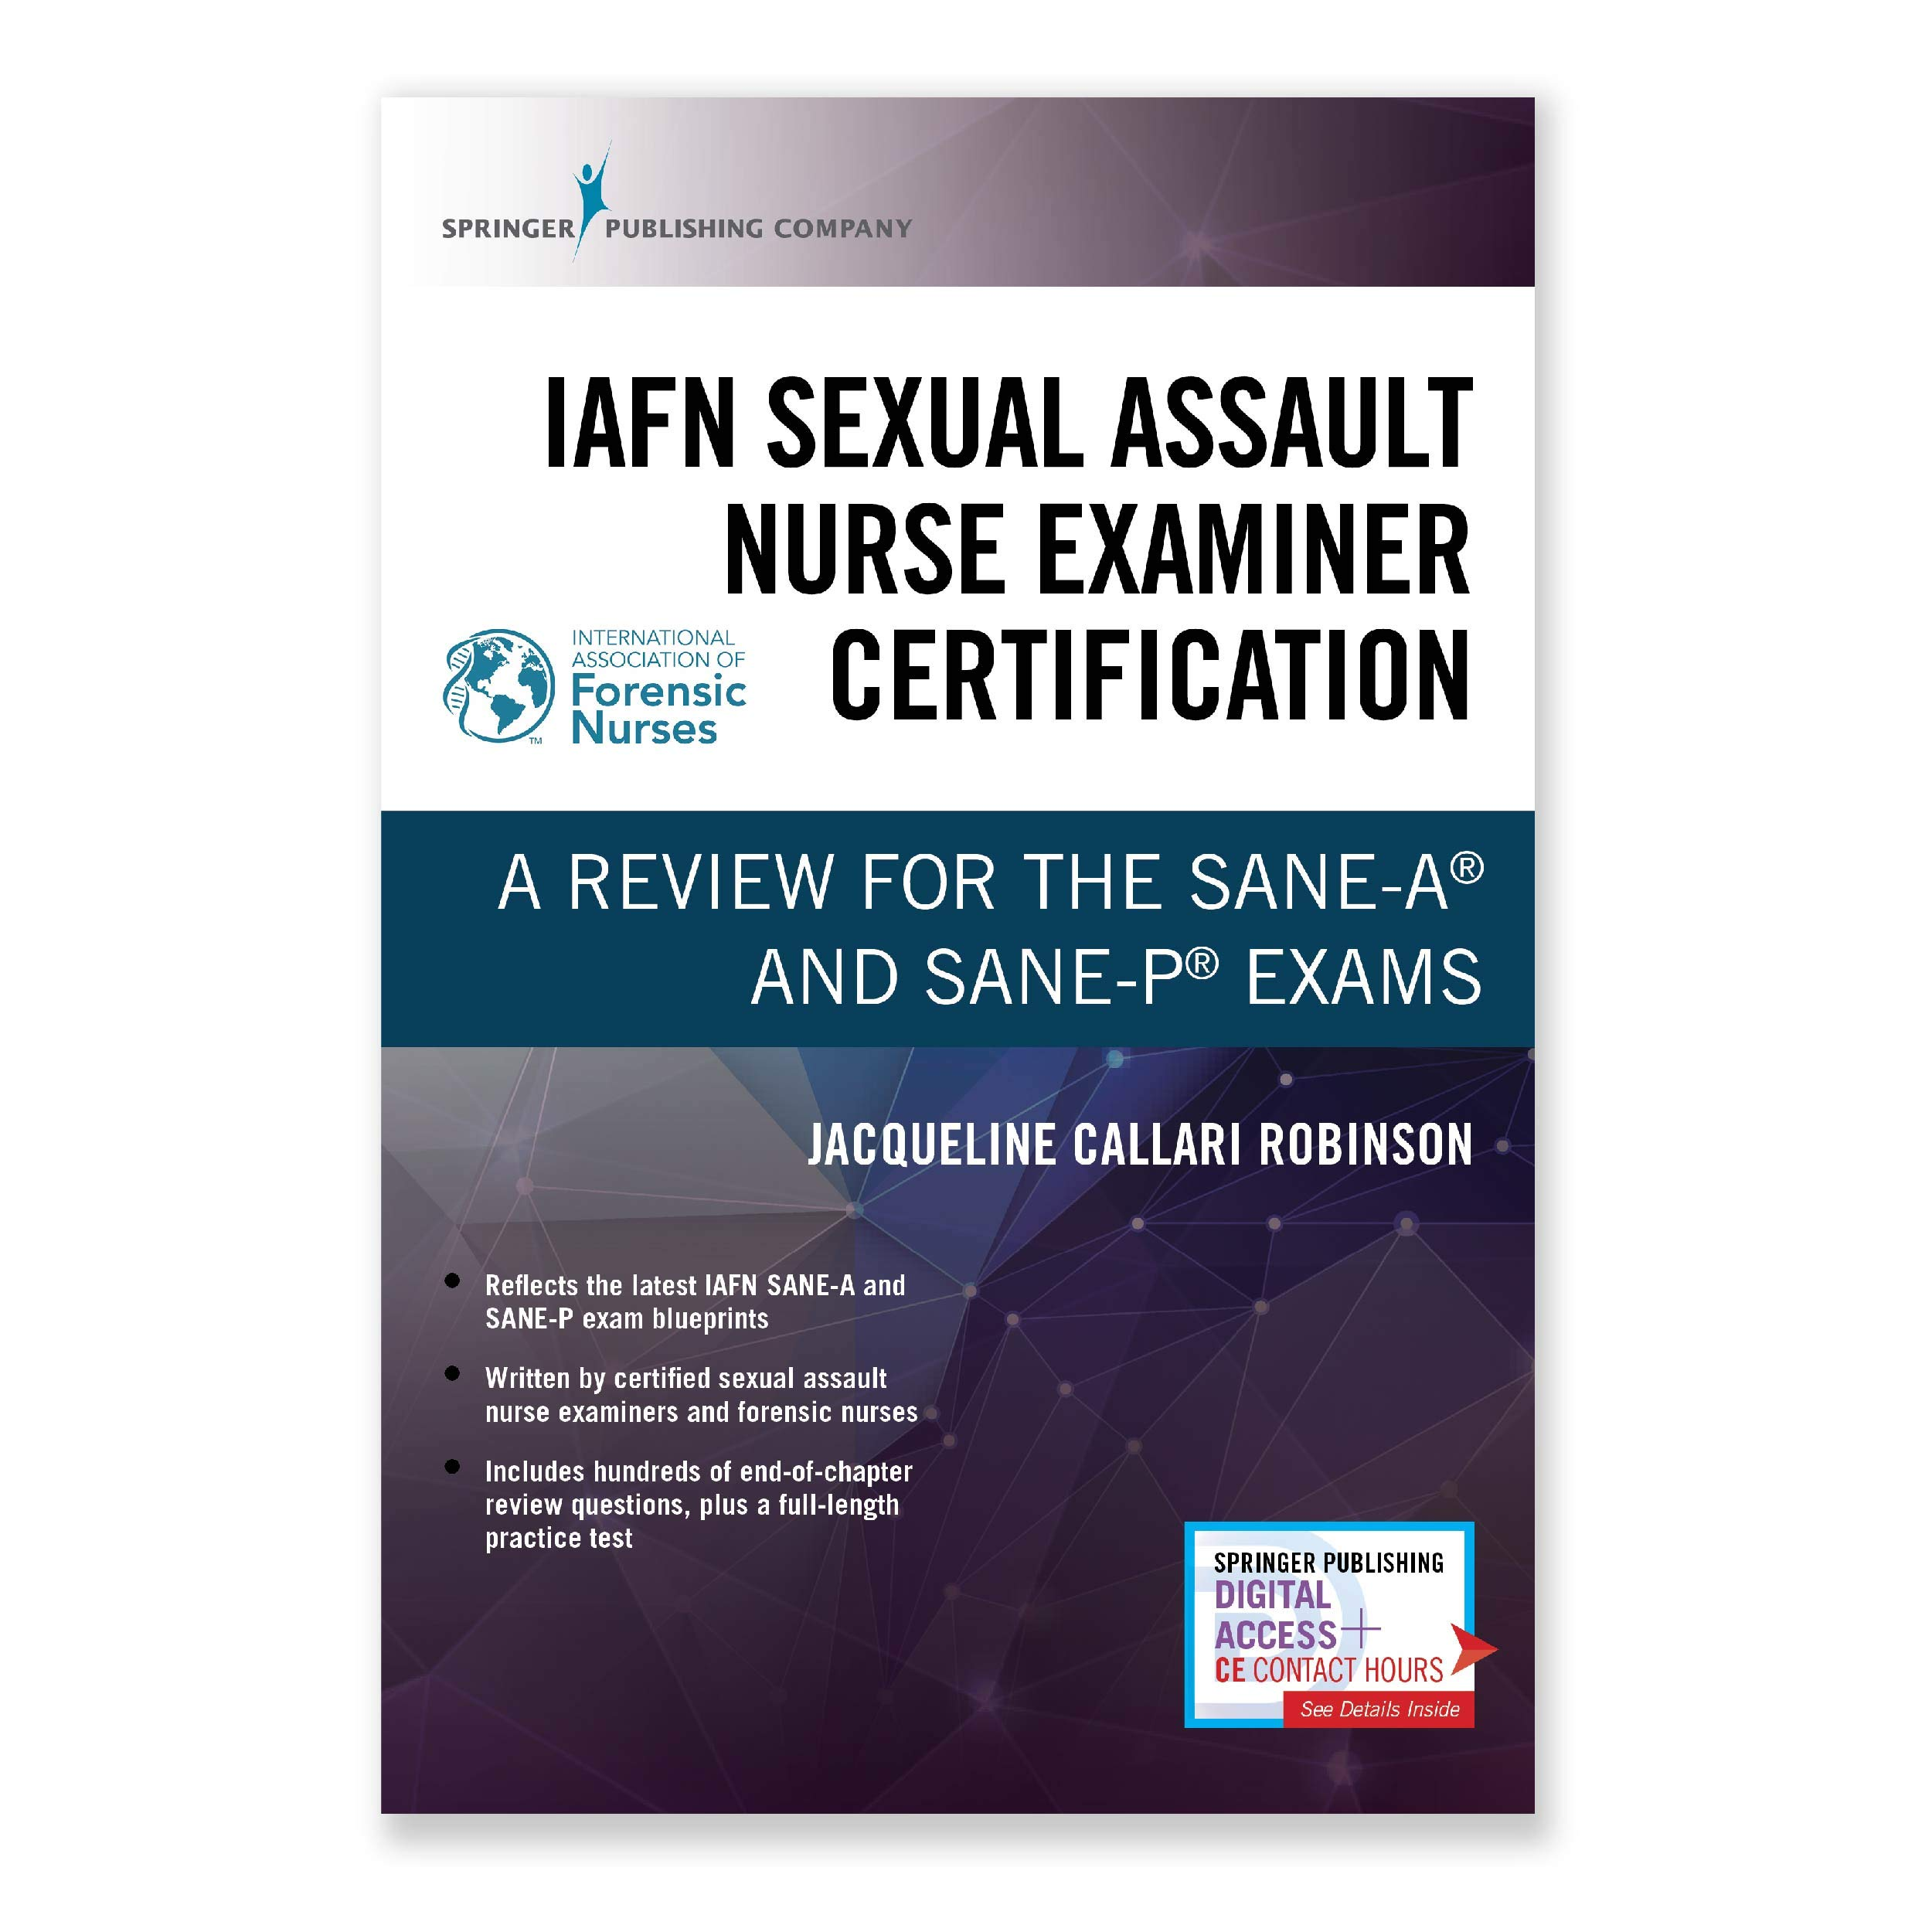 Iafn Sexual Assault Nurse Examiner Certification A Review For The Sane A And Sane P Exams Callari Robinson Jacqueline 9780826135322 Amazon Com Books